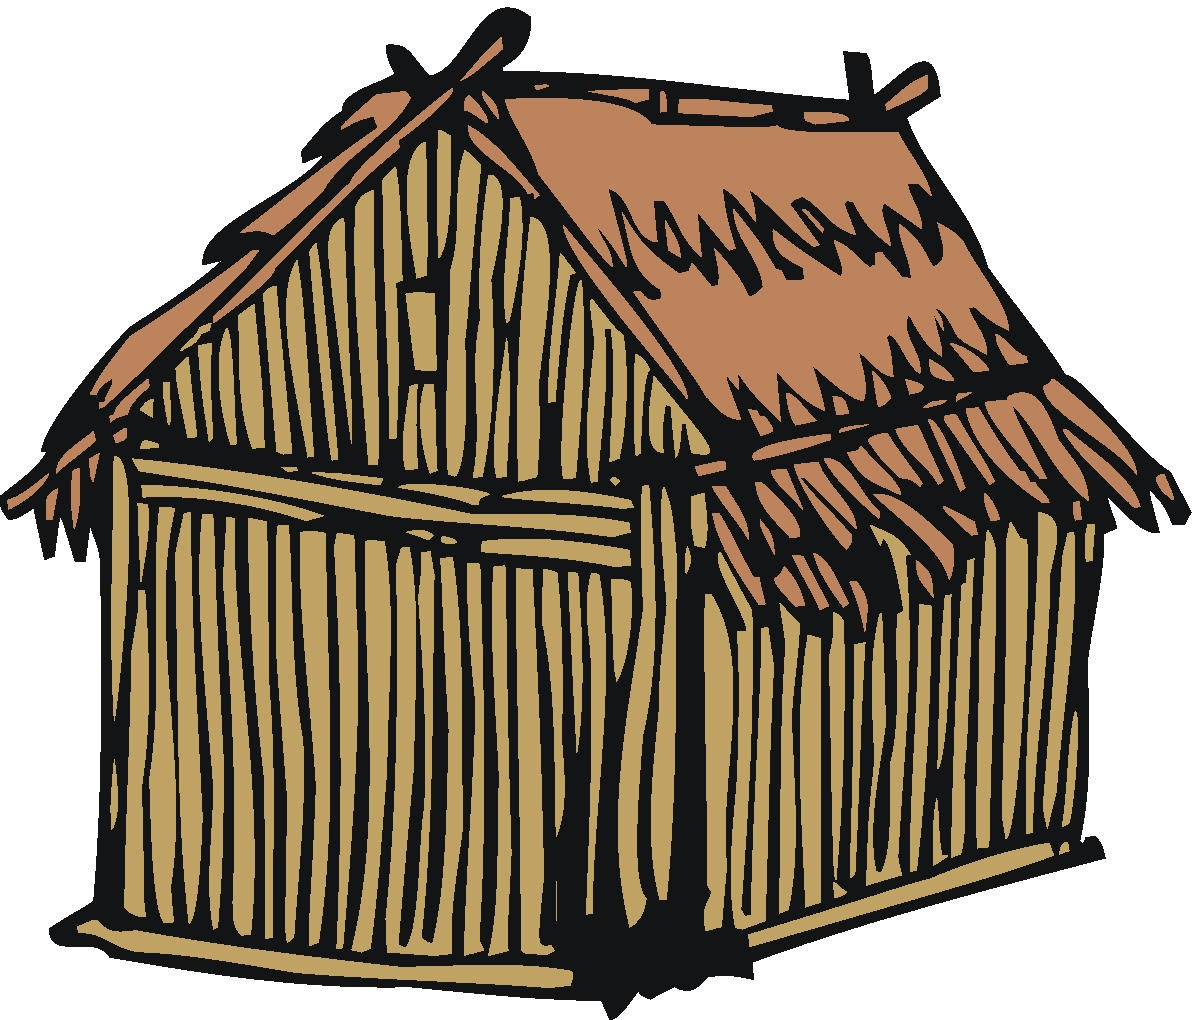 Old House clipart straw hut #3